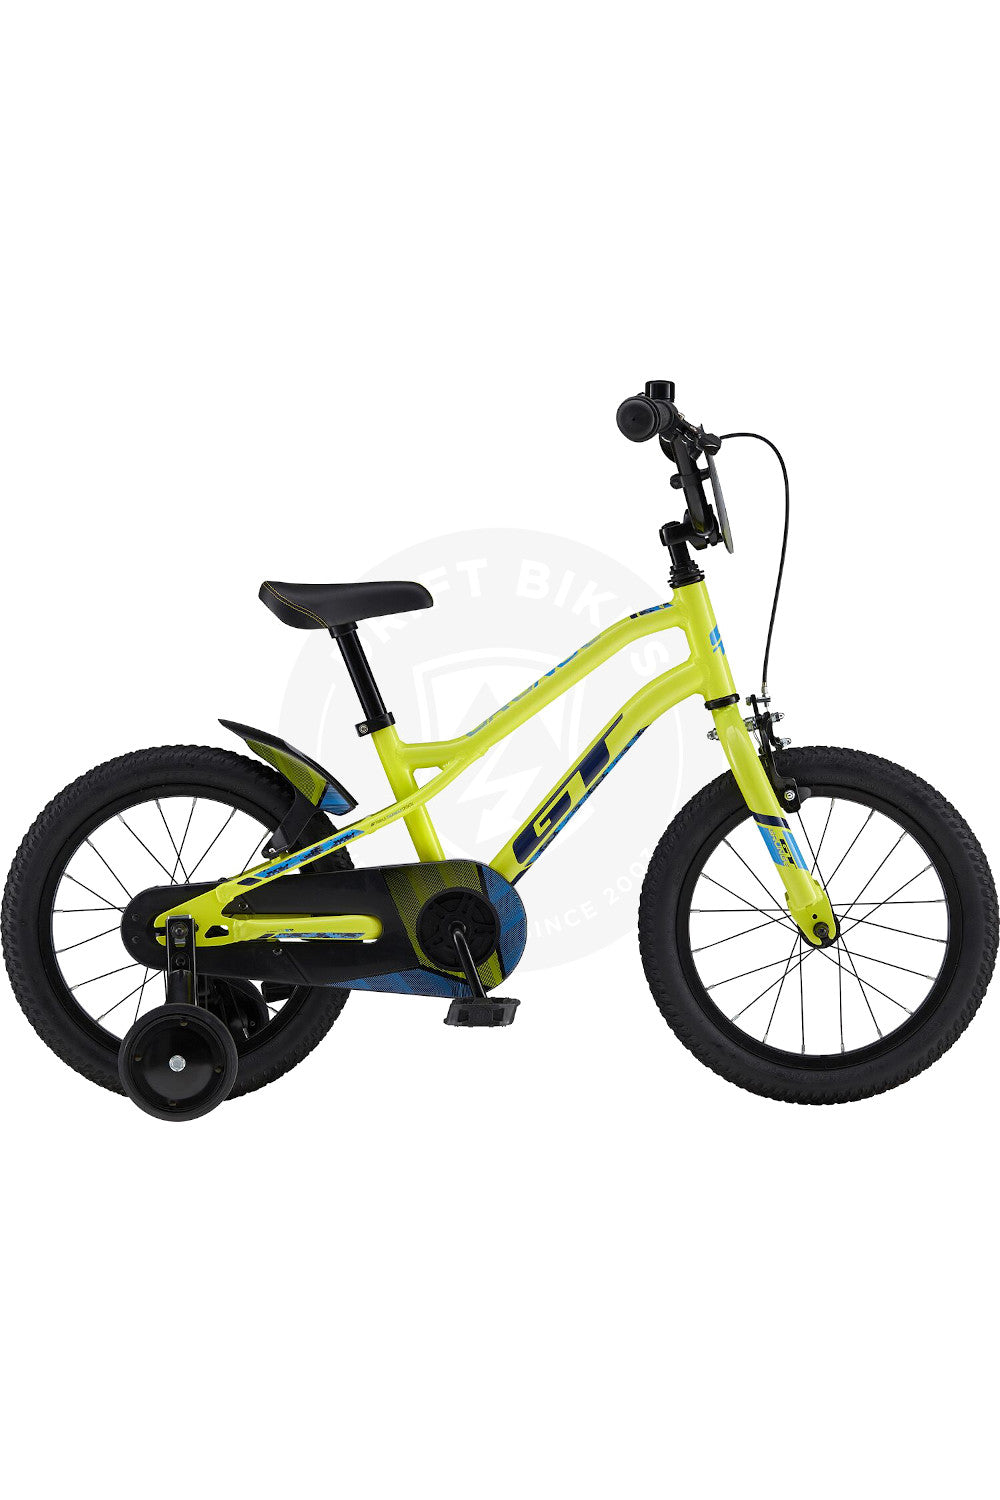 "GT Bicycles 2020 GRUNGE 16"" Kids Bike"